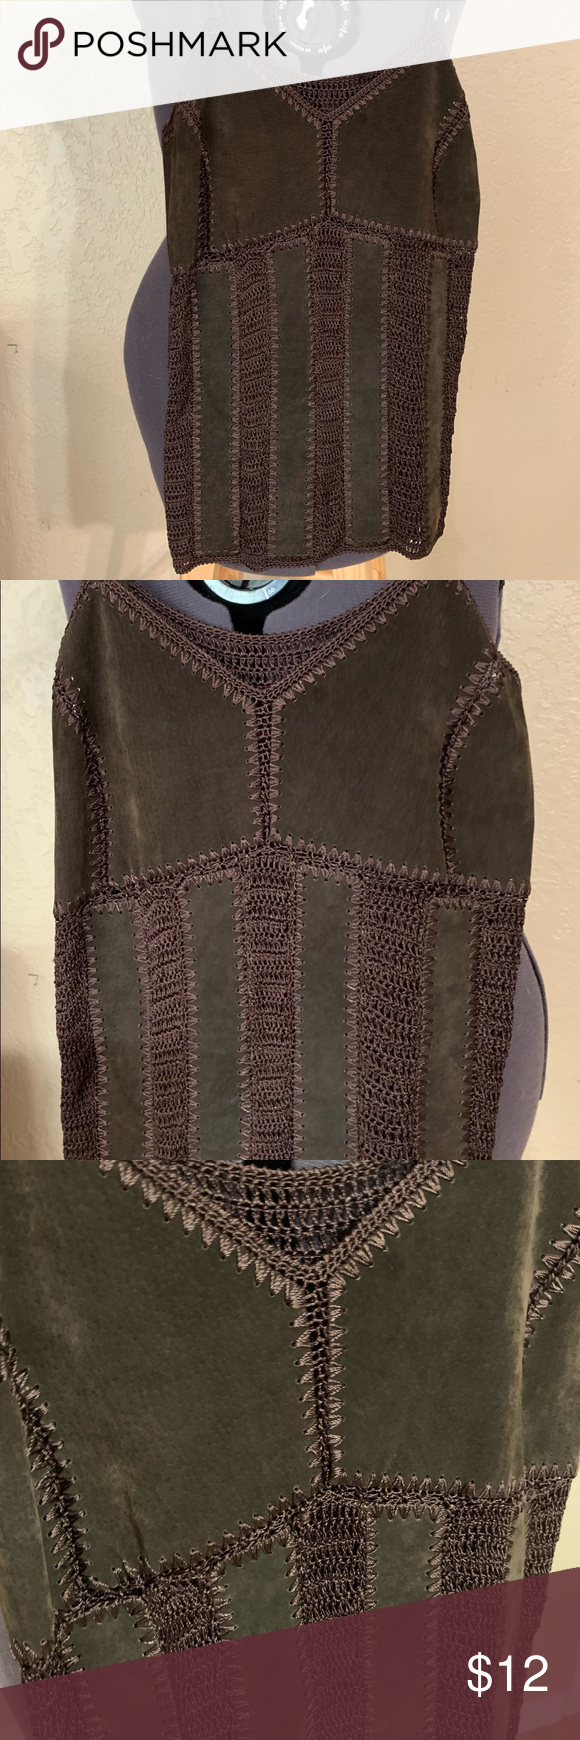 Leather/Crochet Brown Tank Top Cool off this summer in this stylish tank, covered with leather in all the right places, adjustable leather straps, good condition. Tops Tank Tops #crochettanktops